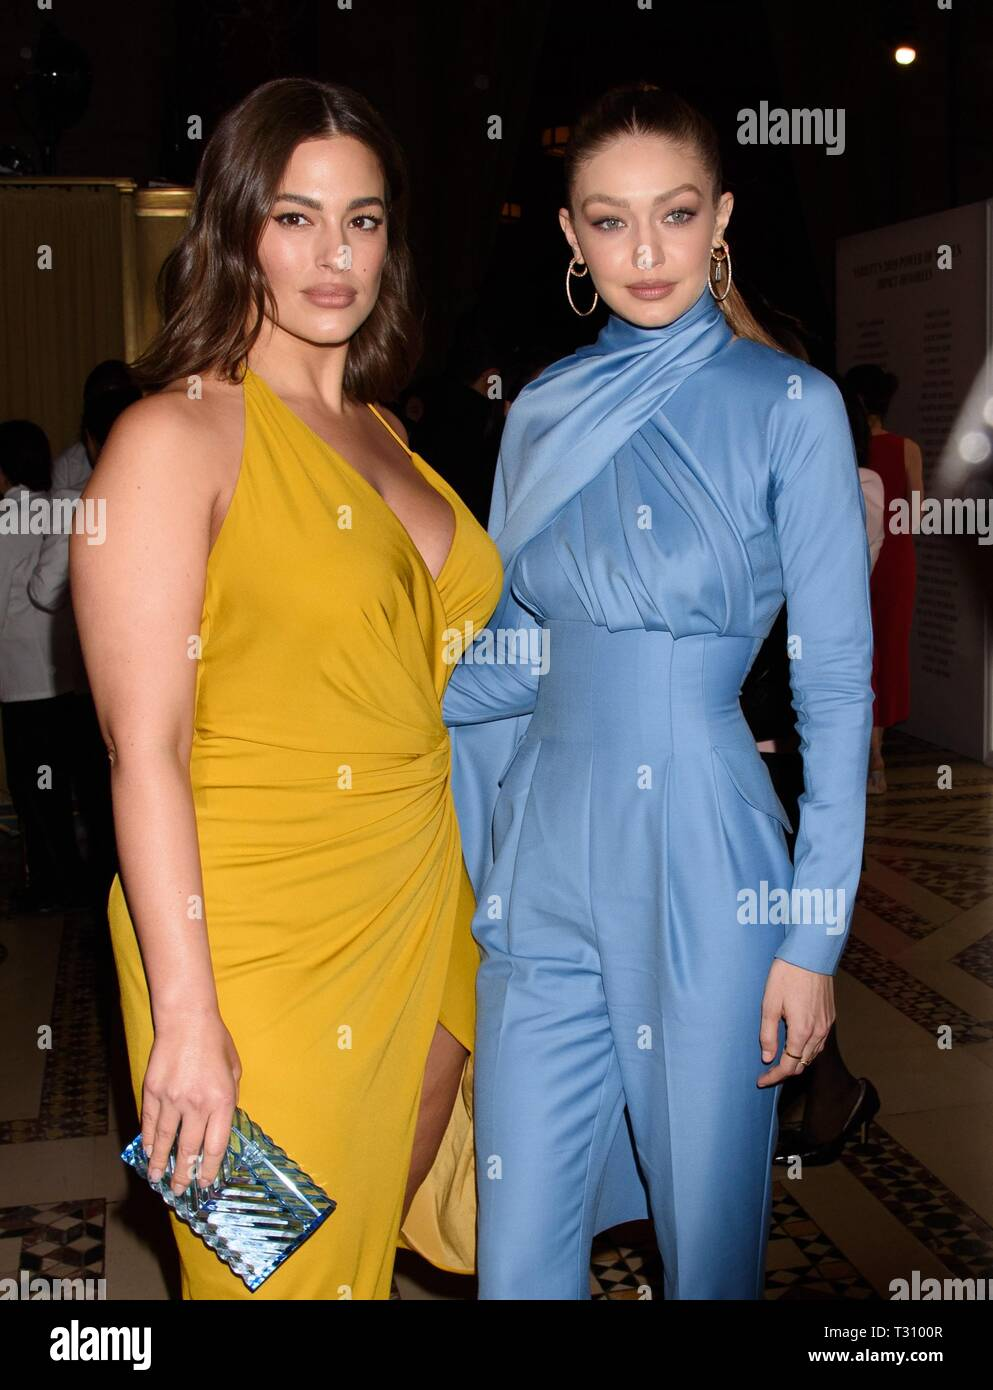 New York Ny Usa 5th Apr 2019 Ashley Graham Gigi Hadid At